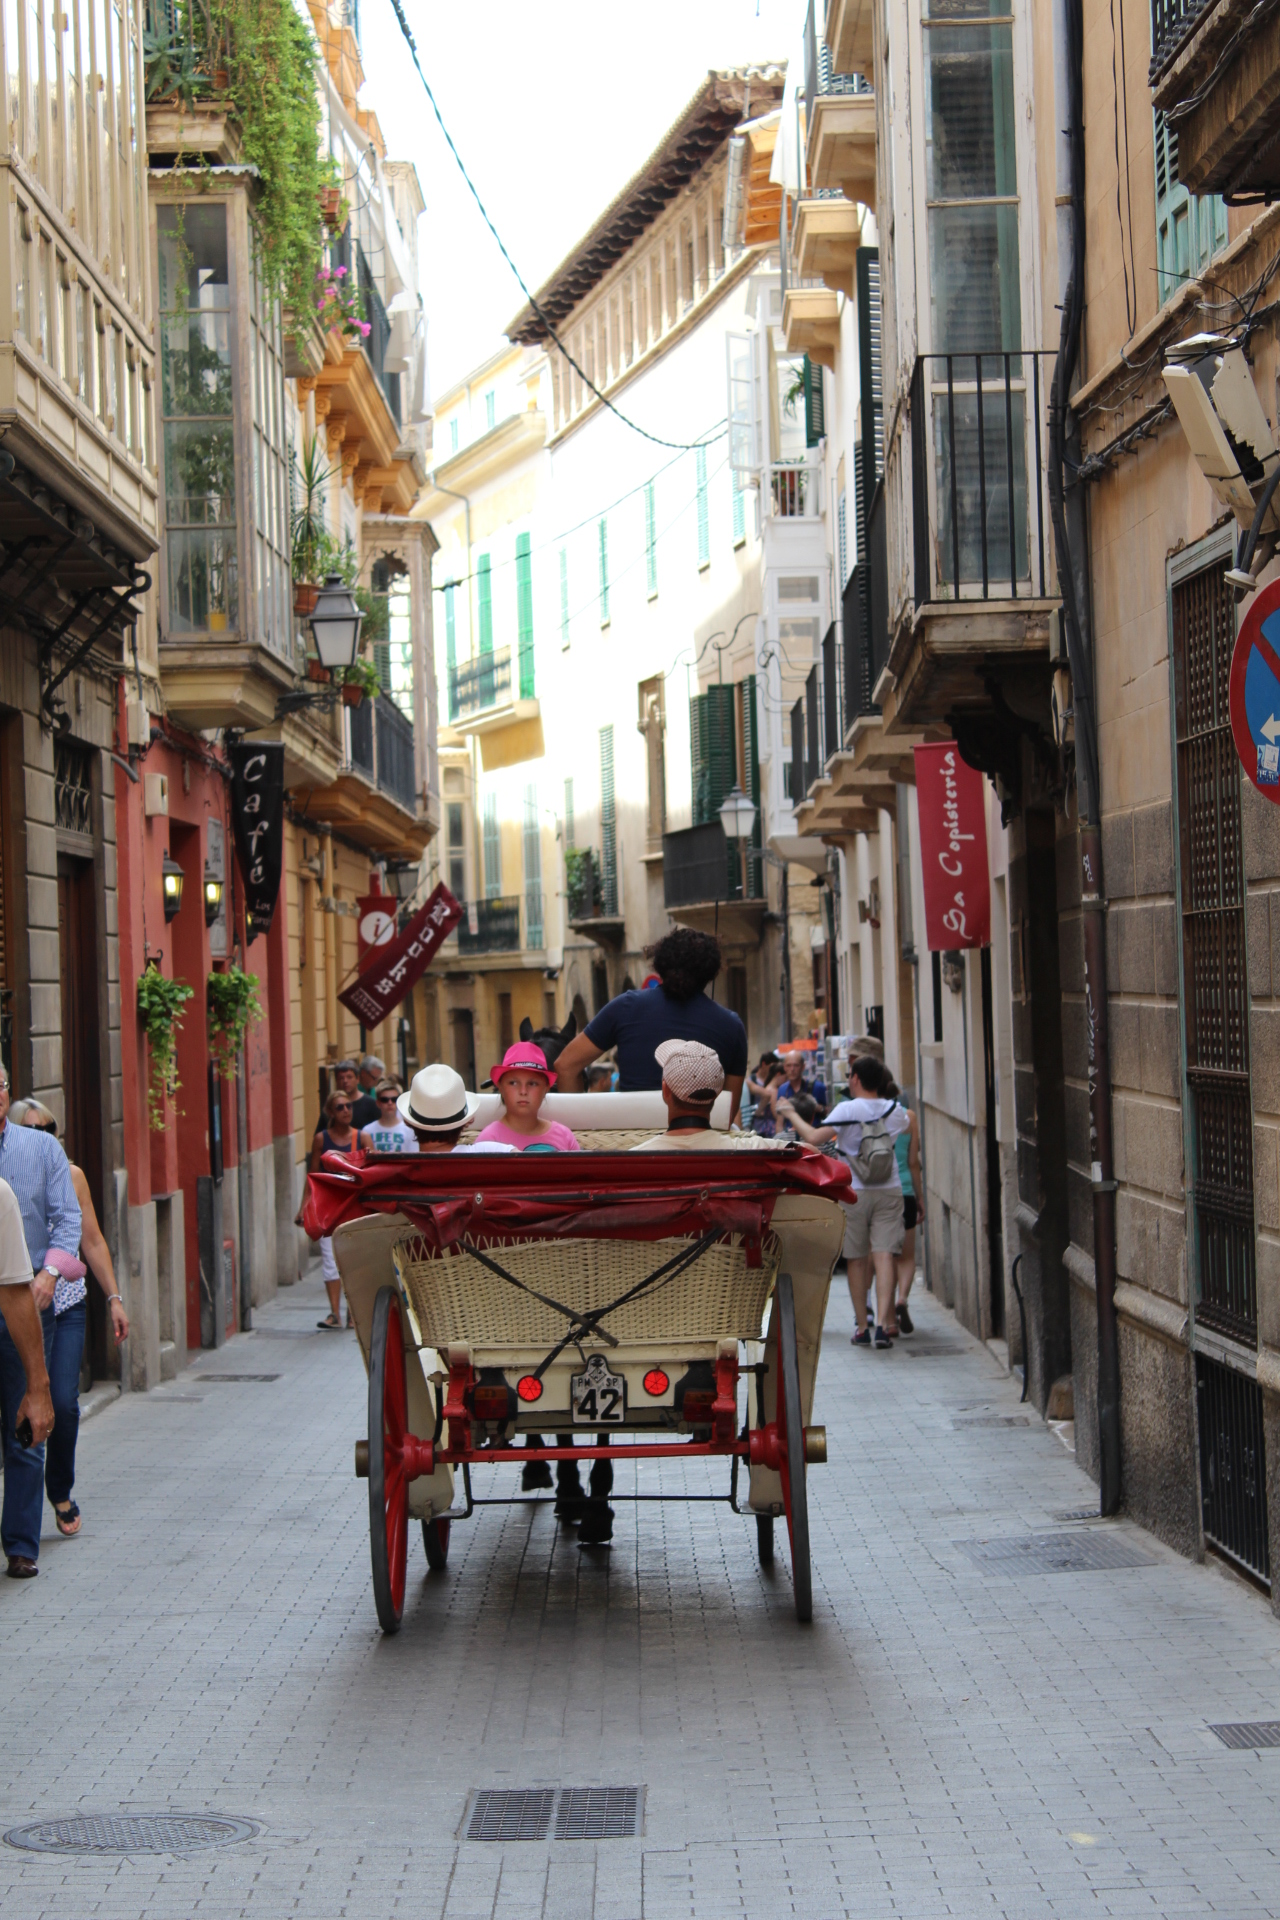 Palma street with carriage